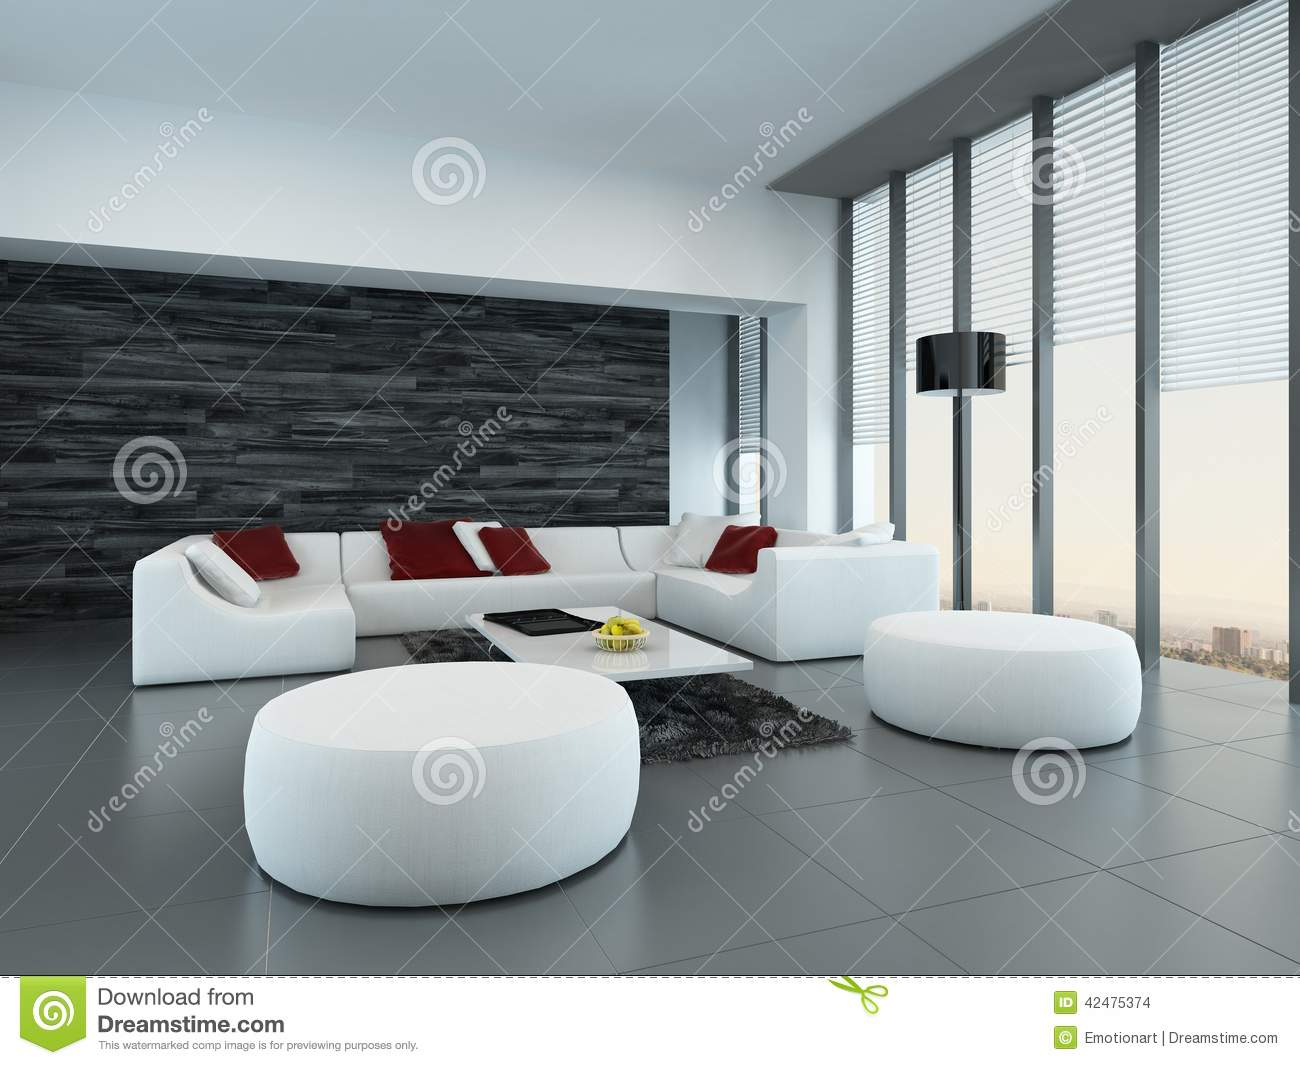 Salon Contemporain Gris Intérieur D Un Salon Gris Et Blanc Moderne Illustration Stock